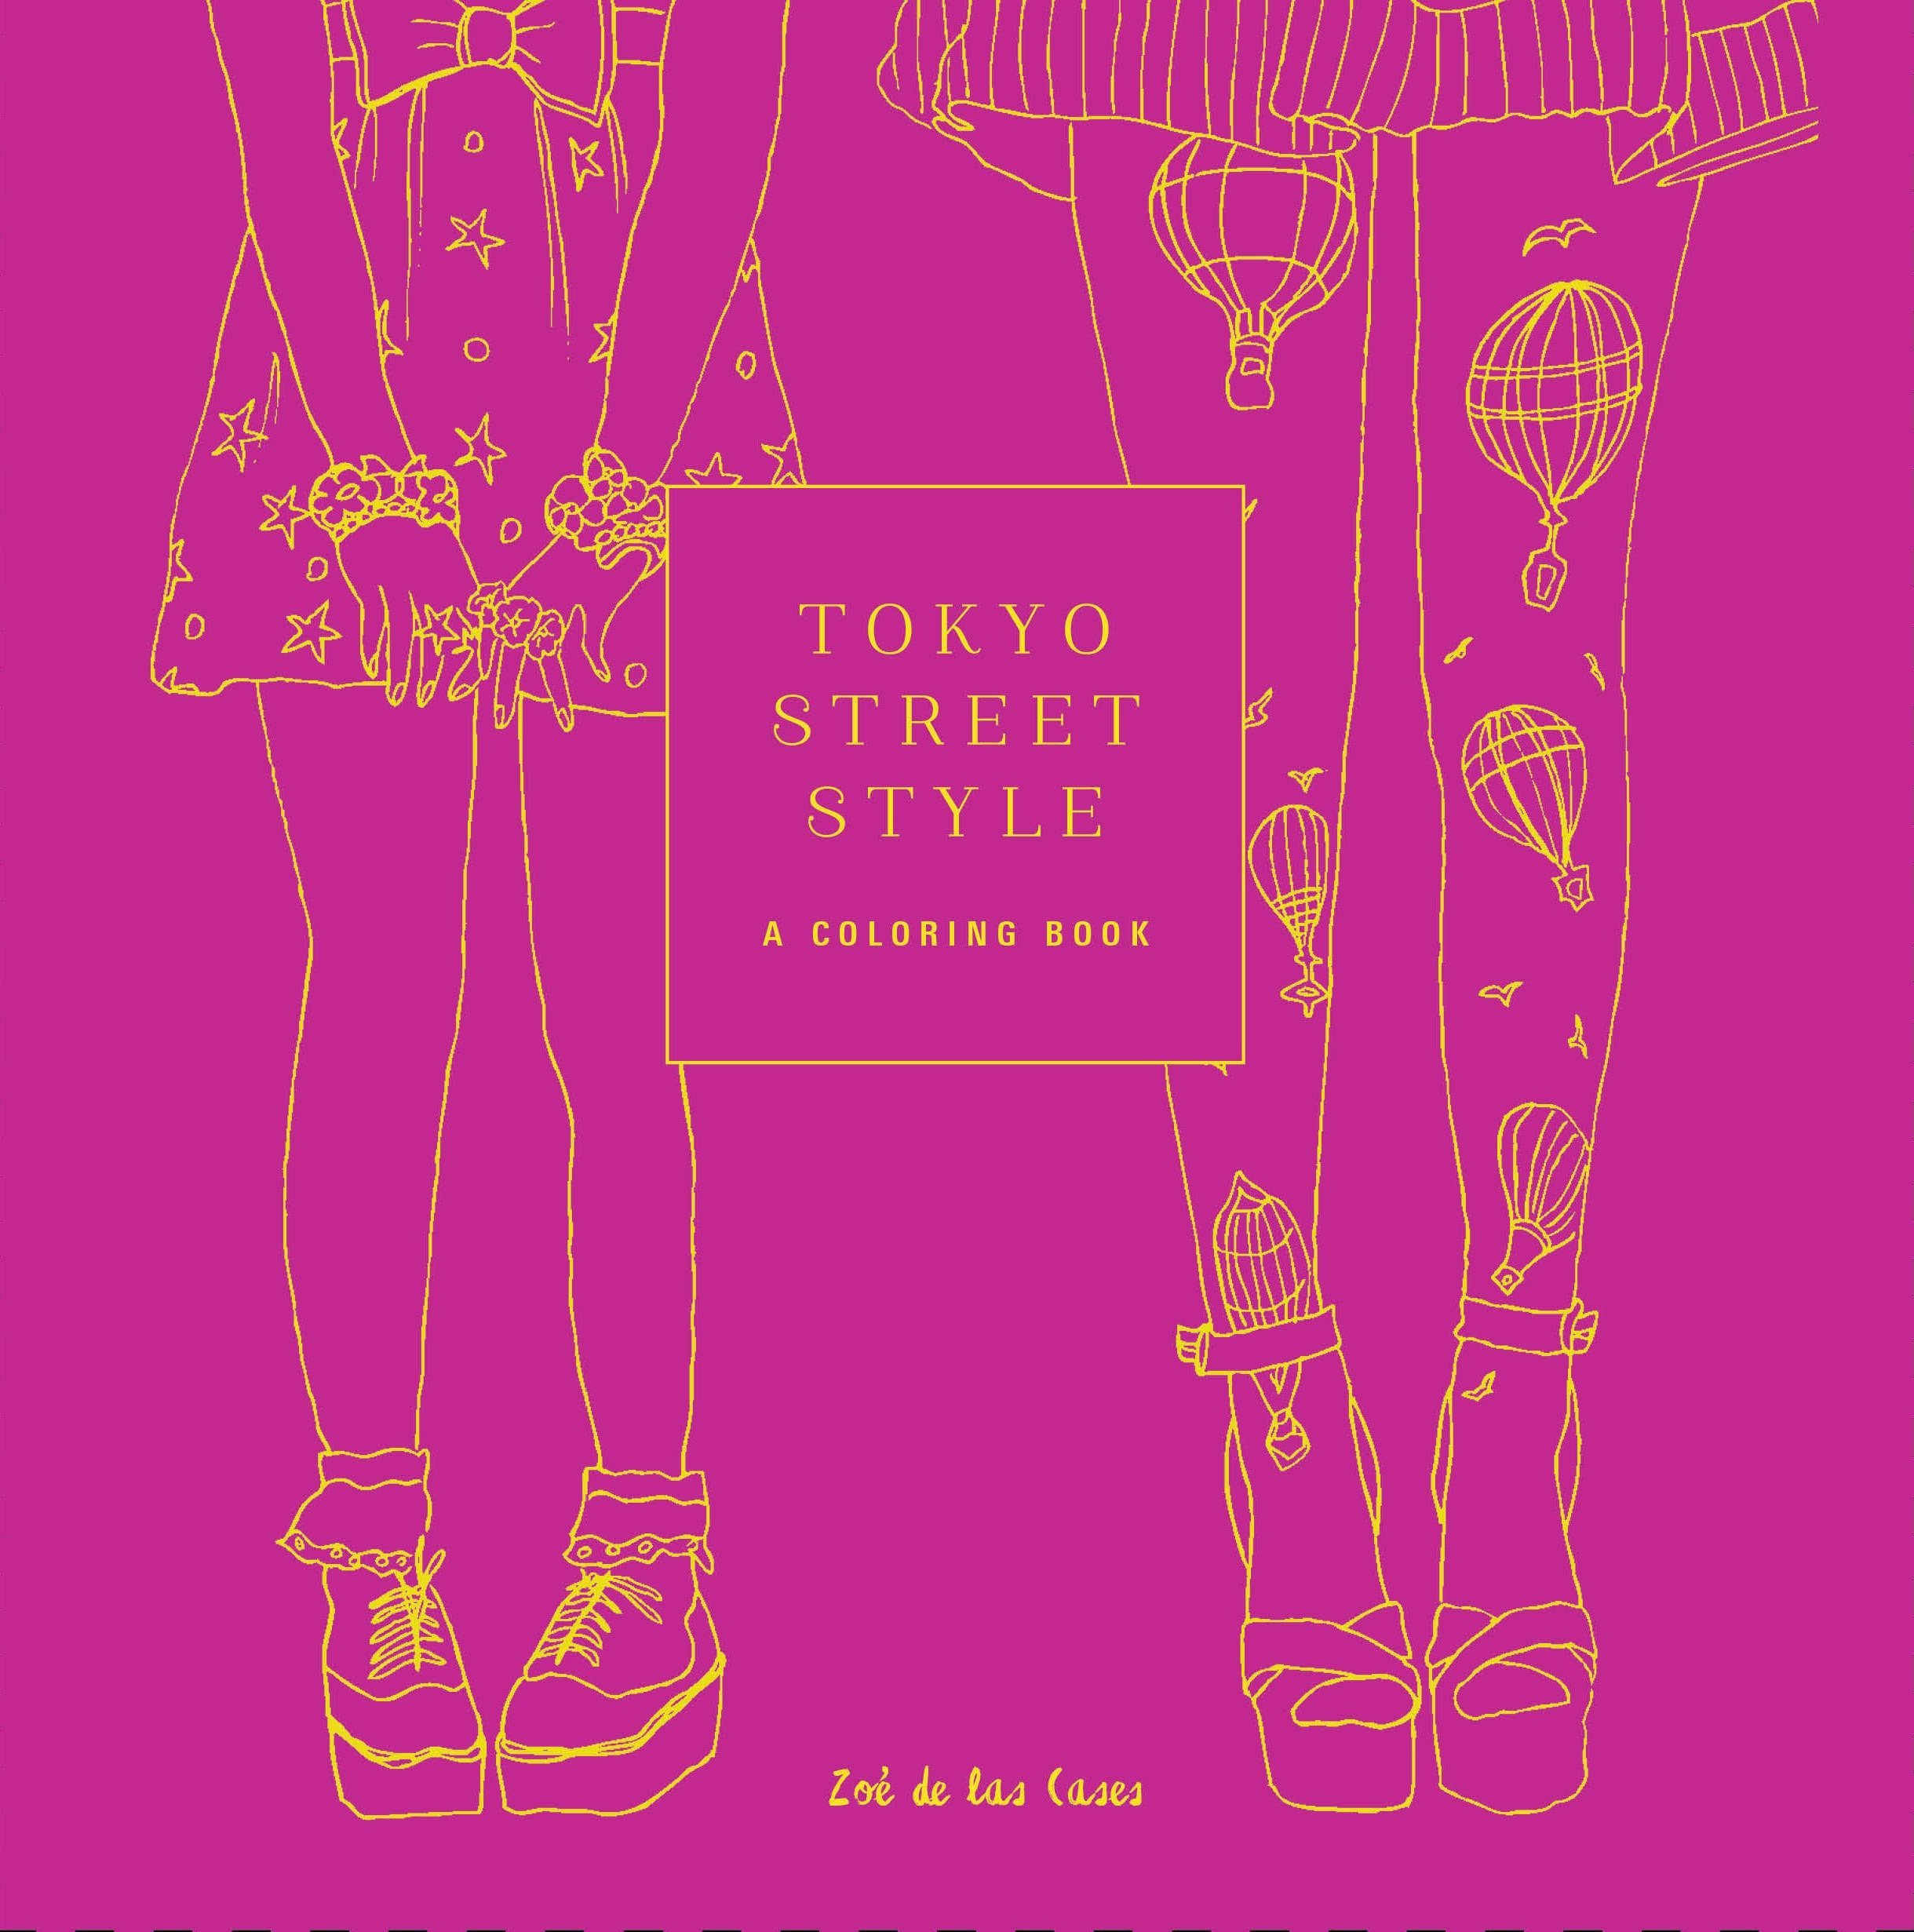 Tokyo Street Style Coloring Books product image